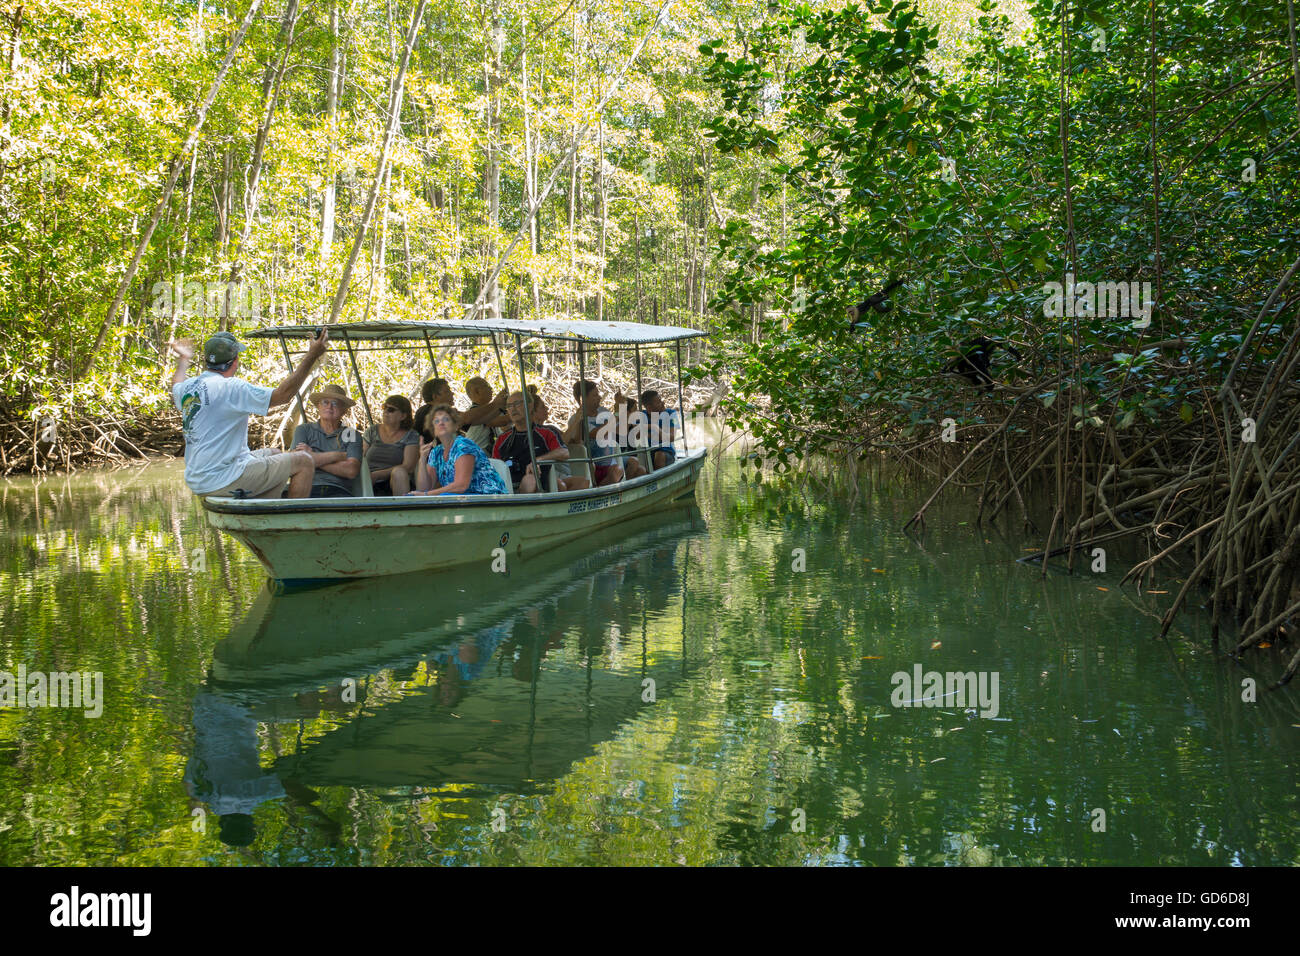 A mangrove tour boat full of tourists put on by the company Iguana Tours in Quepos, Costa Rica. - Stock Image